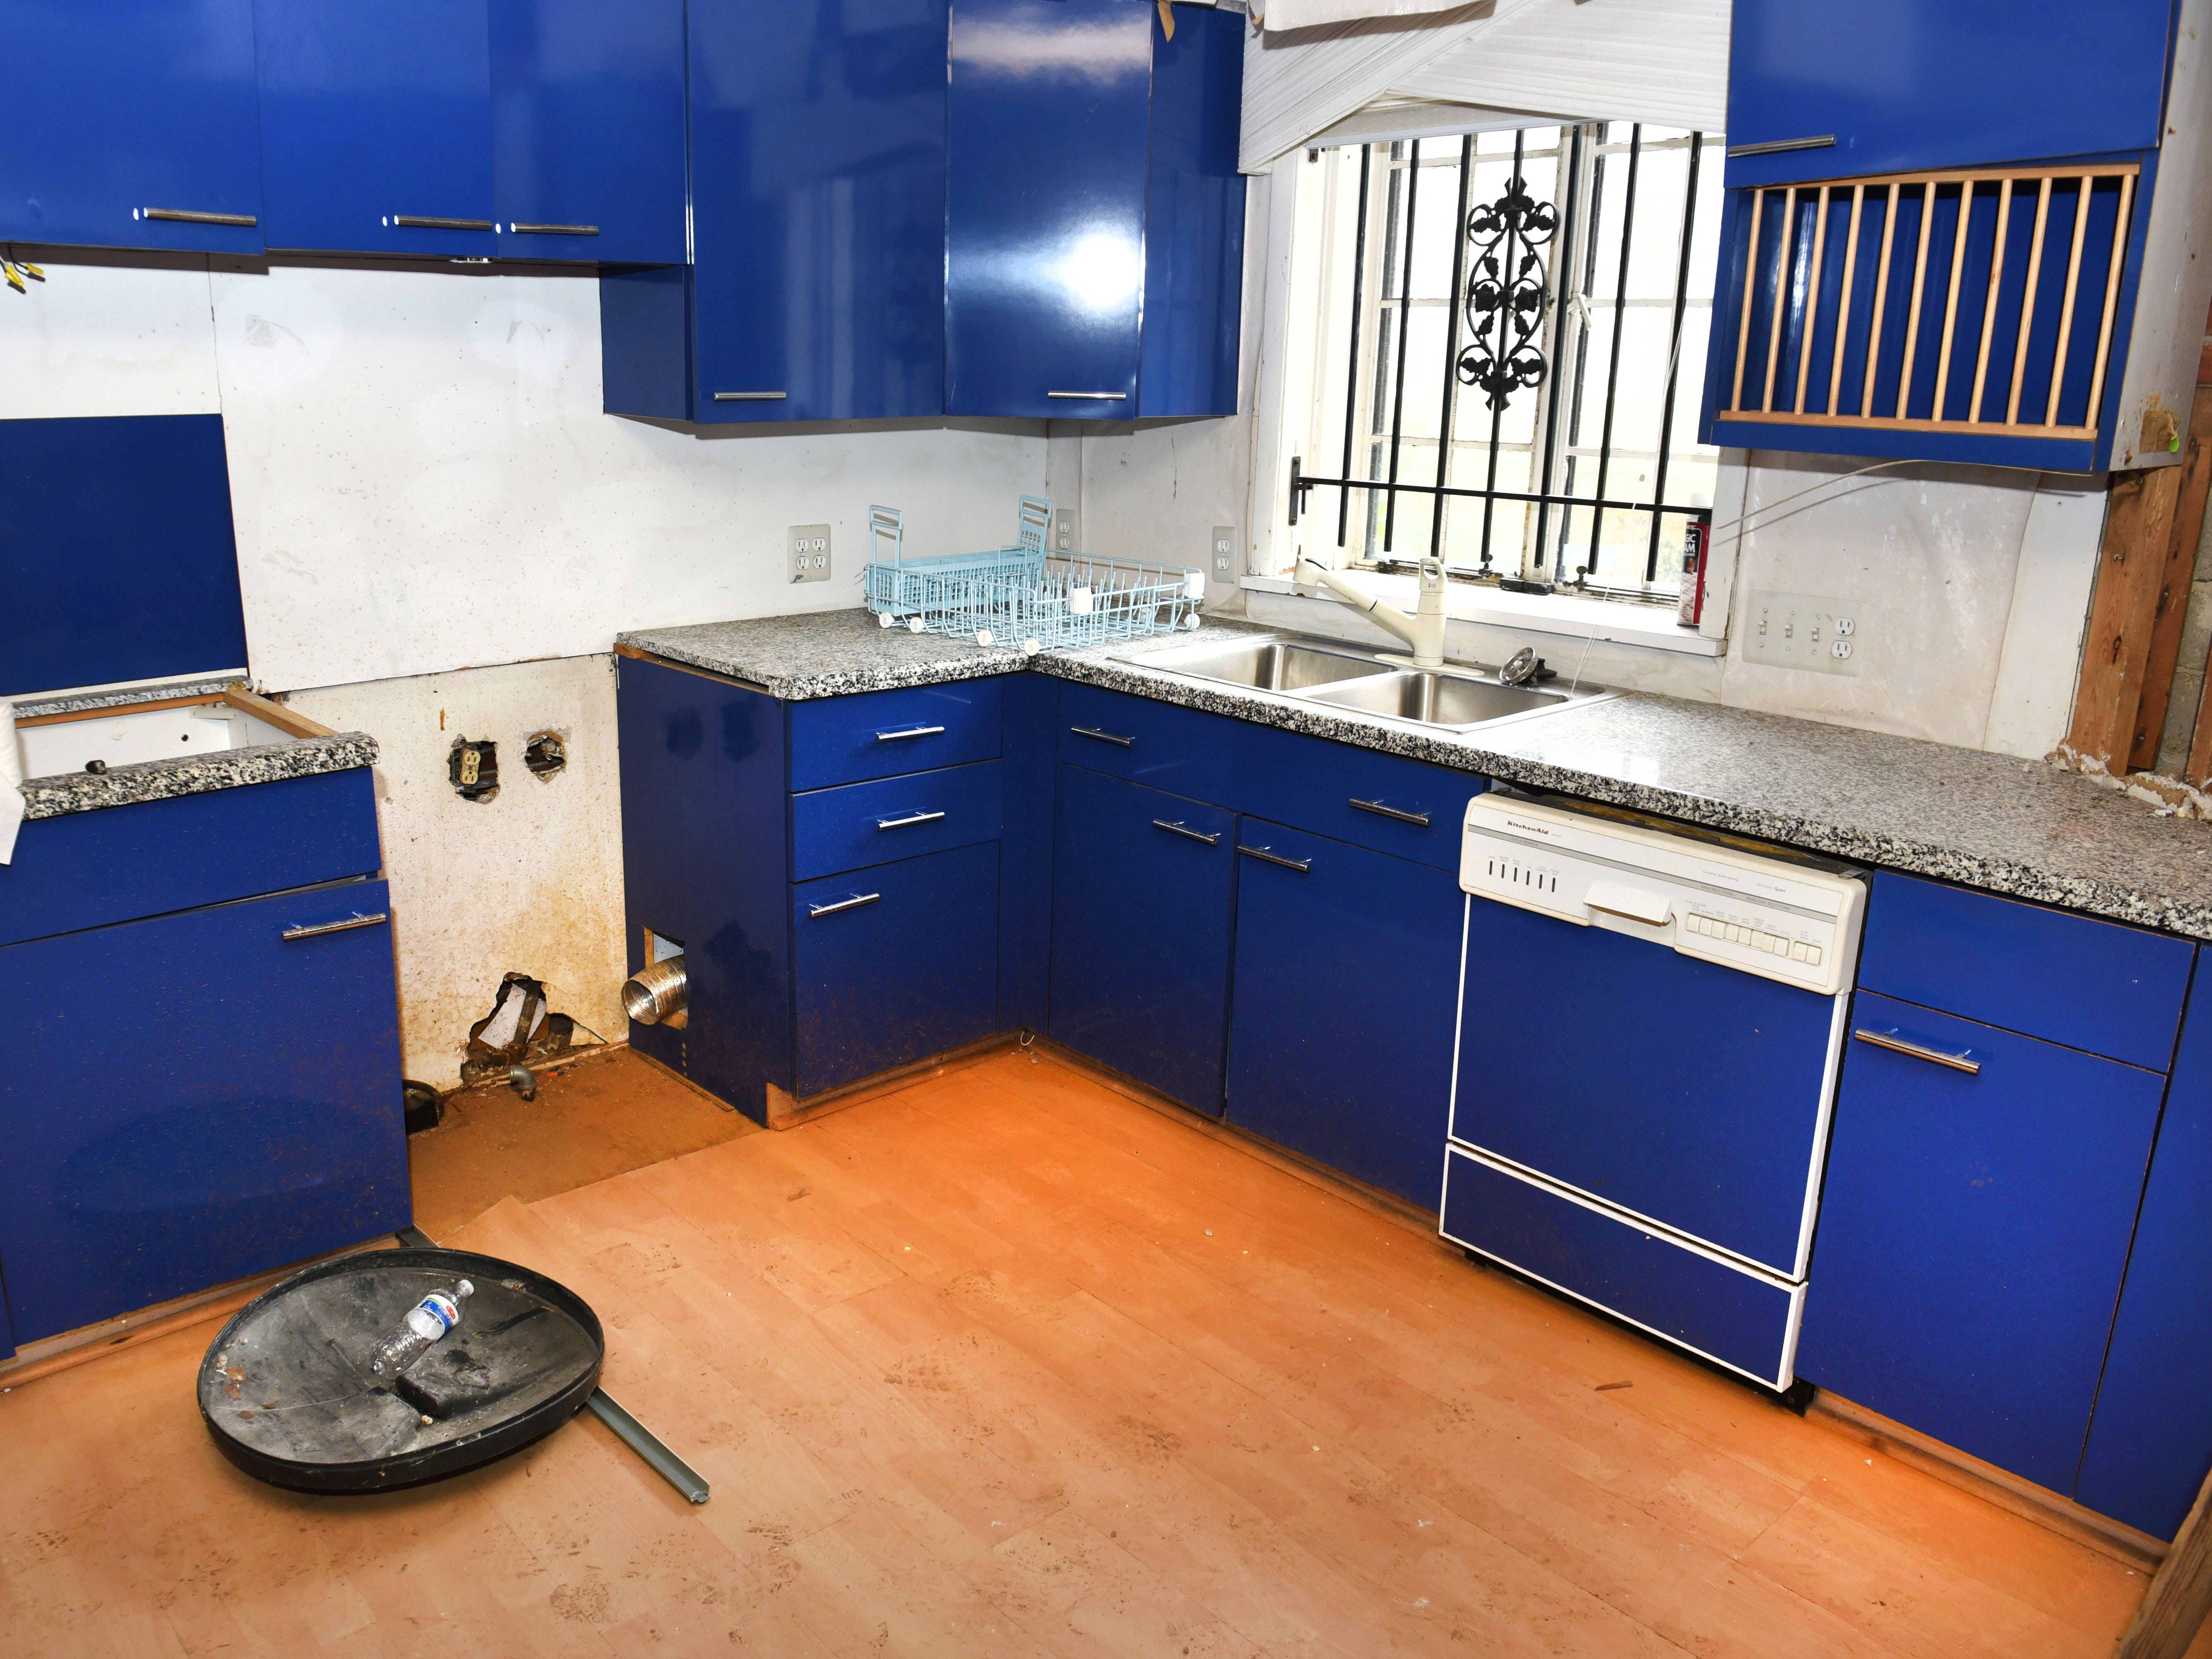 The bright blue cabinets remain in the kitchen of the former home of Aretha Franklin.